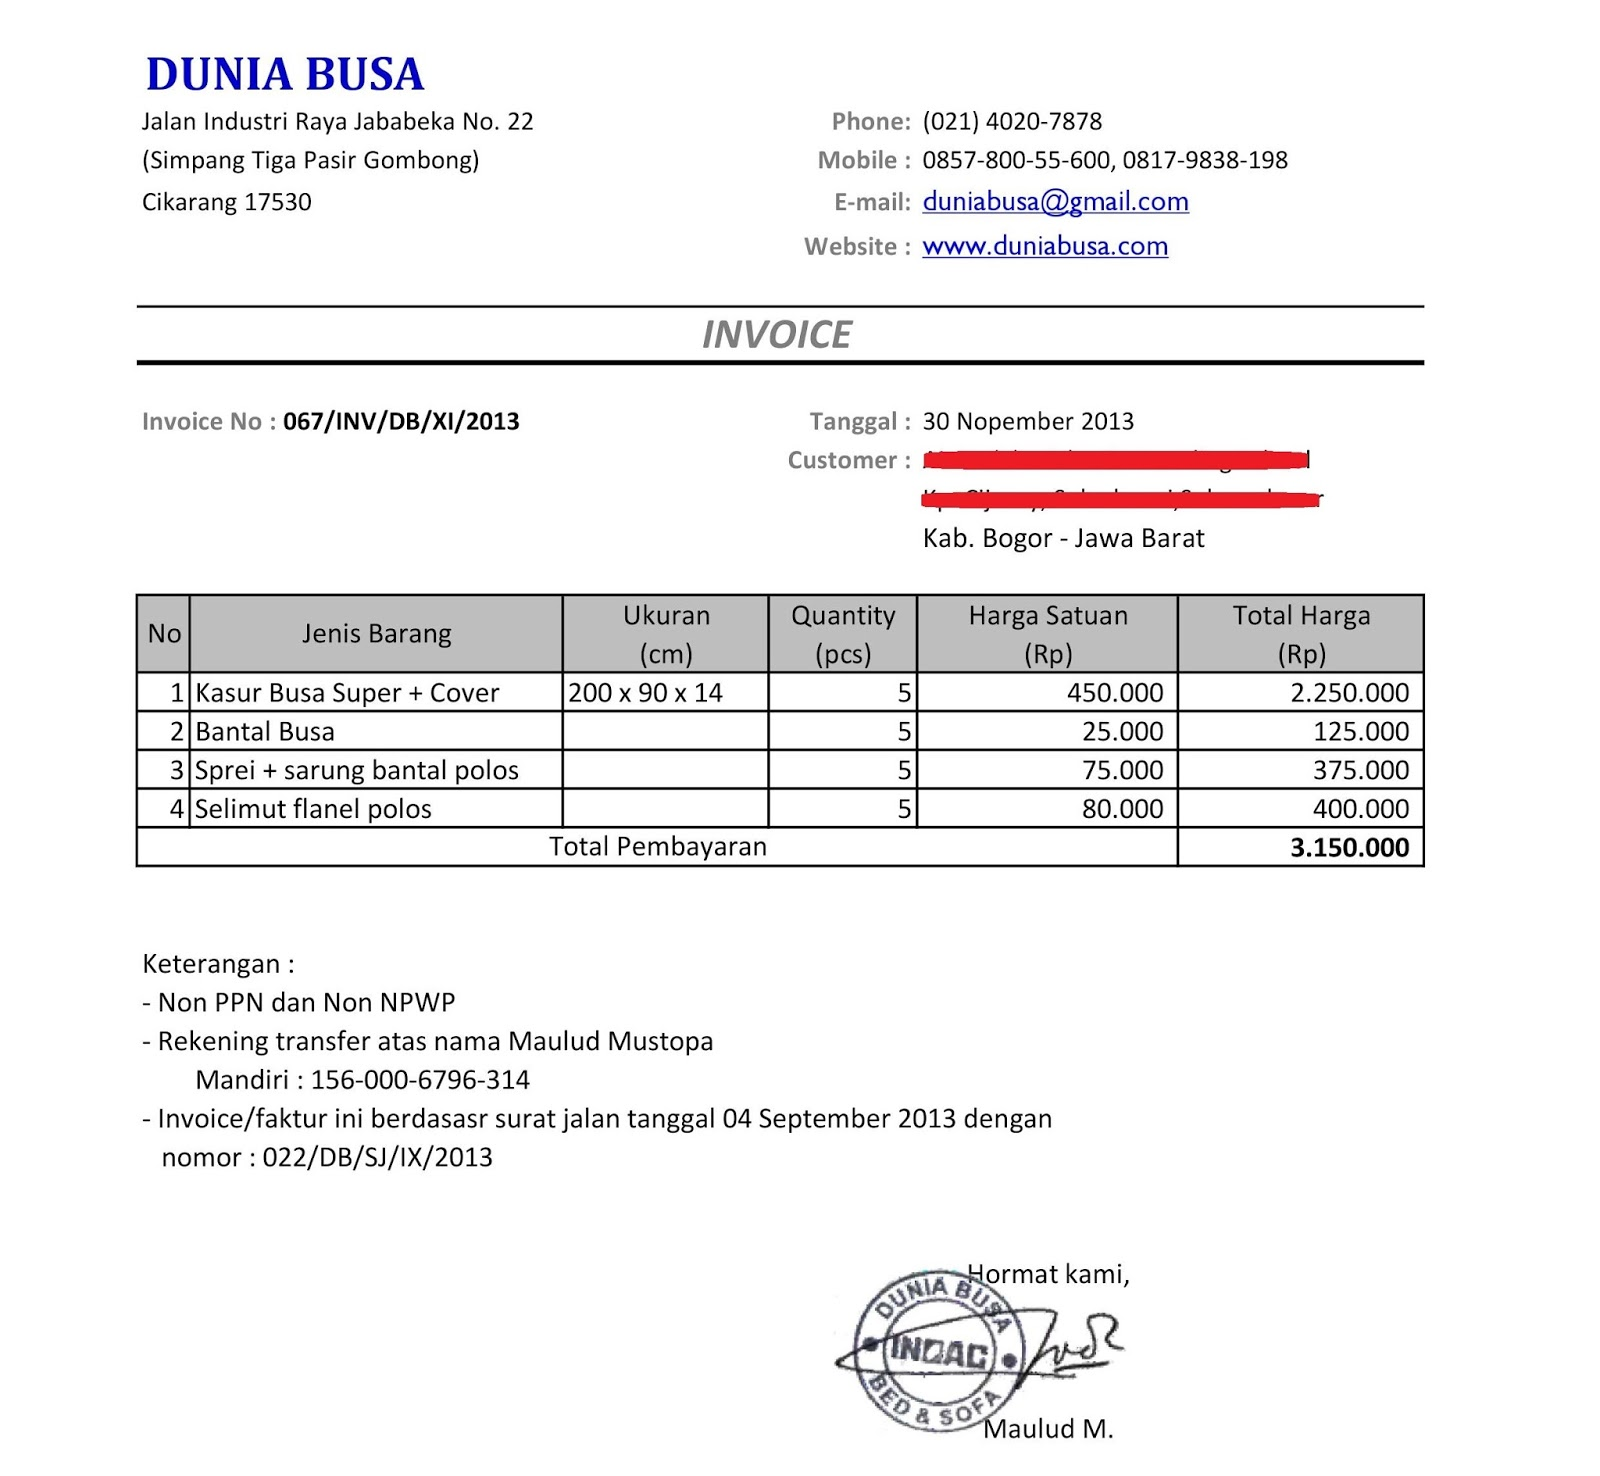 Coachoutletonlineplusus  Unusual Free Invoice Online  Create Invoice Online  Invoice Template  With Inspiring Contoh Format Invoice Atau Surat Tagihan  Brankas Arsip  Free Invoice Online With Appealing Free Invoice Templates Printable Also Canada Invoice In Addition Invoice Discounting Jobs And Invoice Format In Excel As Well As Free Invoice Template In Word Additionally Invoice And Quote Software From Sklepco With Coachoutletonlineplusus  Inspiring Free Invoice Online  Create Invoice Online  Invoice Template  With Appealing Contoh Format Invoice Atau Surat Tagihan  Brankas Arsip  Free Invoice Online And Unusual Free Invoice Templates Printable Also Canada Invoice In Addition Invoice Discounting Jobs From Sklepco